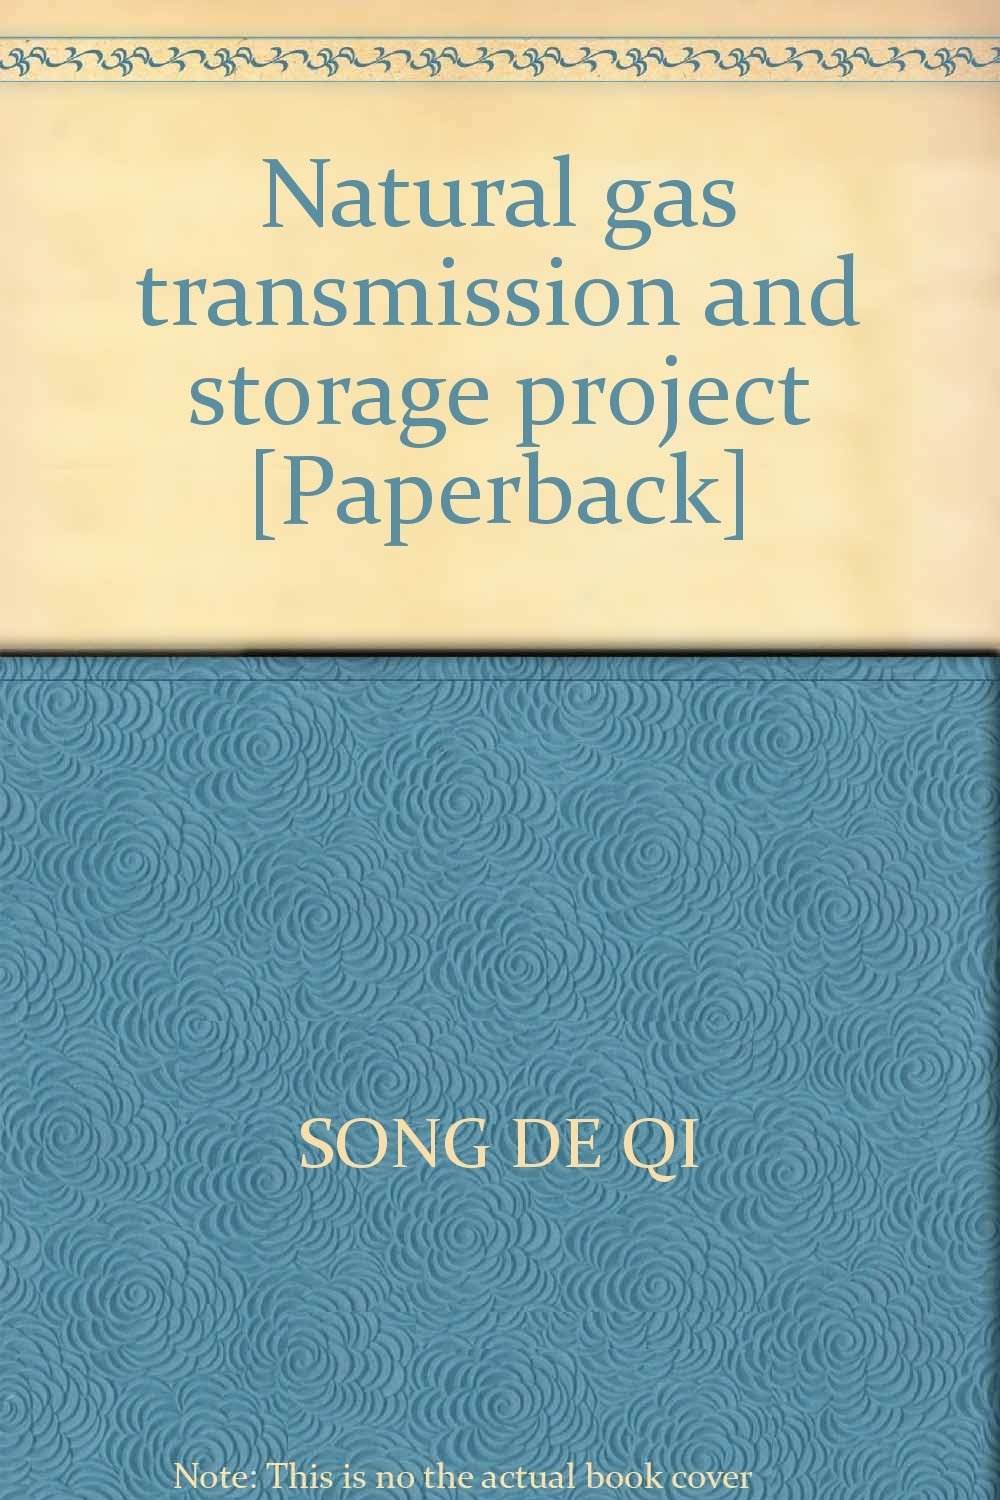 Natural gas transmission and storage project [Paperback] ebook